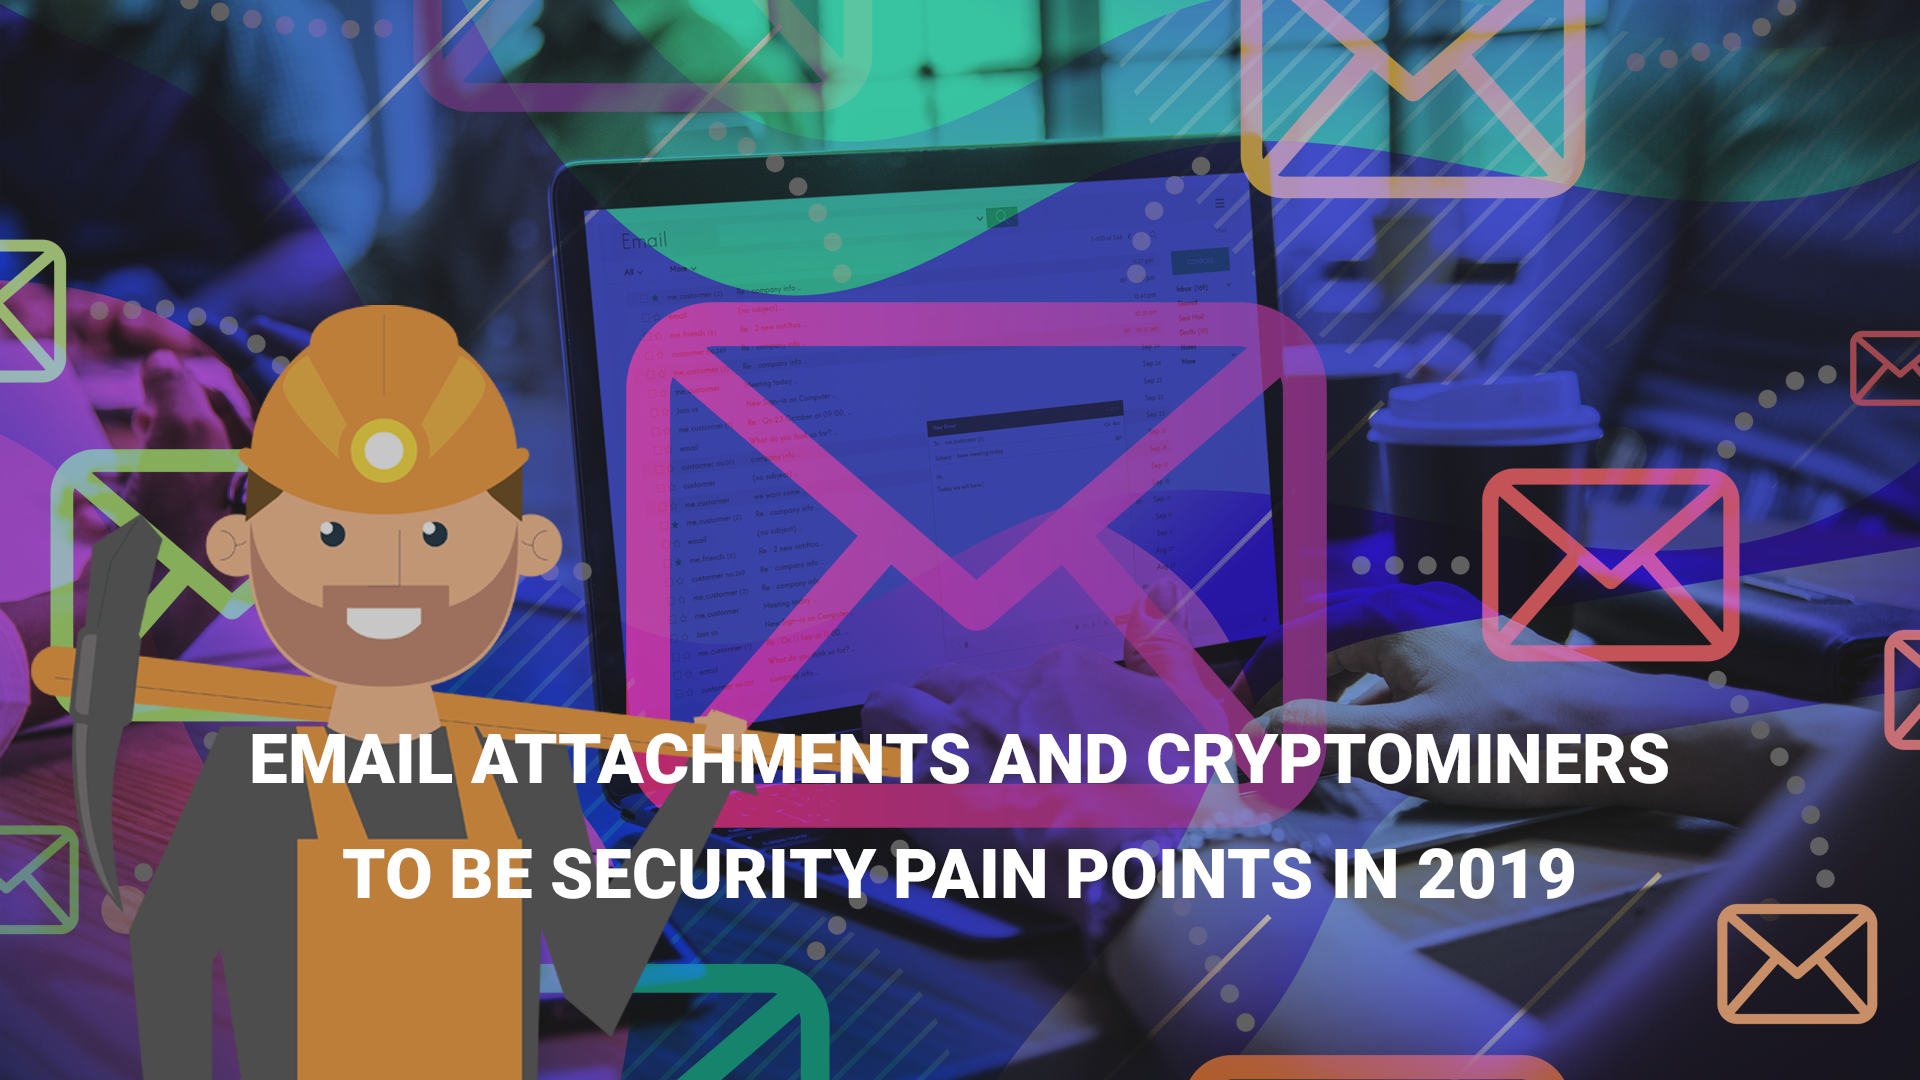 Email Attachments and Cryptominers to be Security Pain Points in 2019